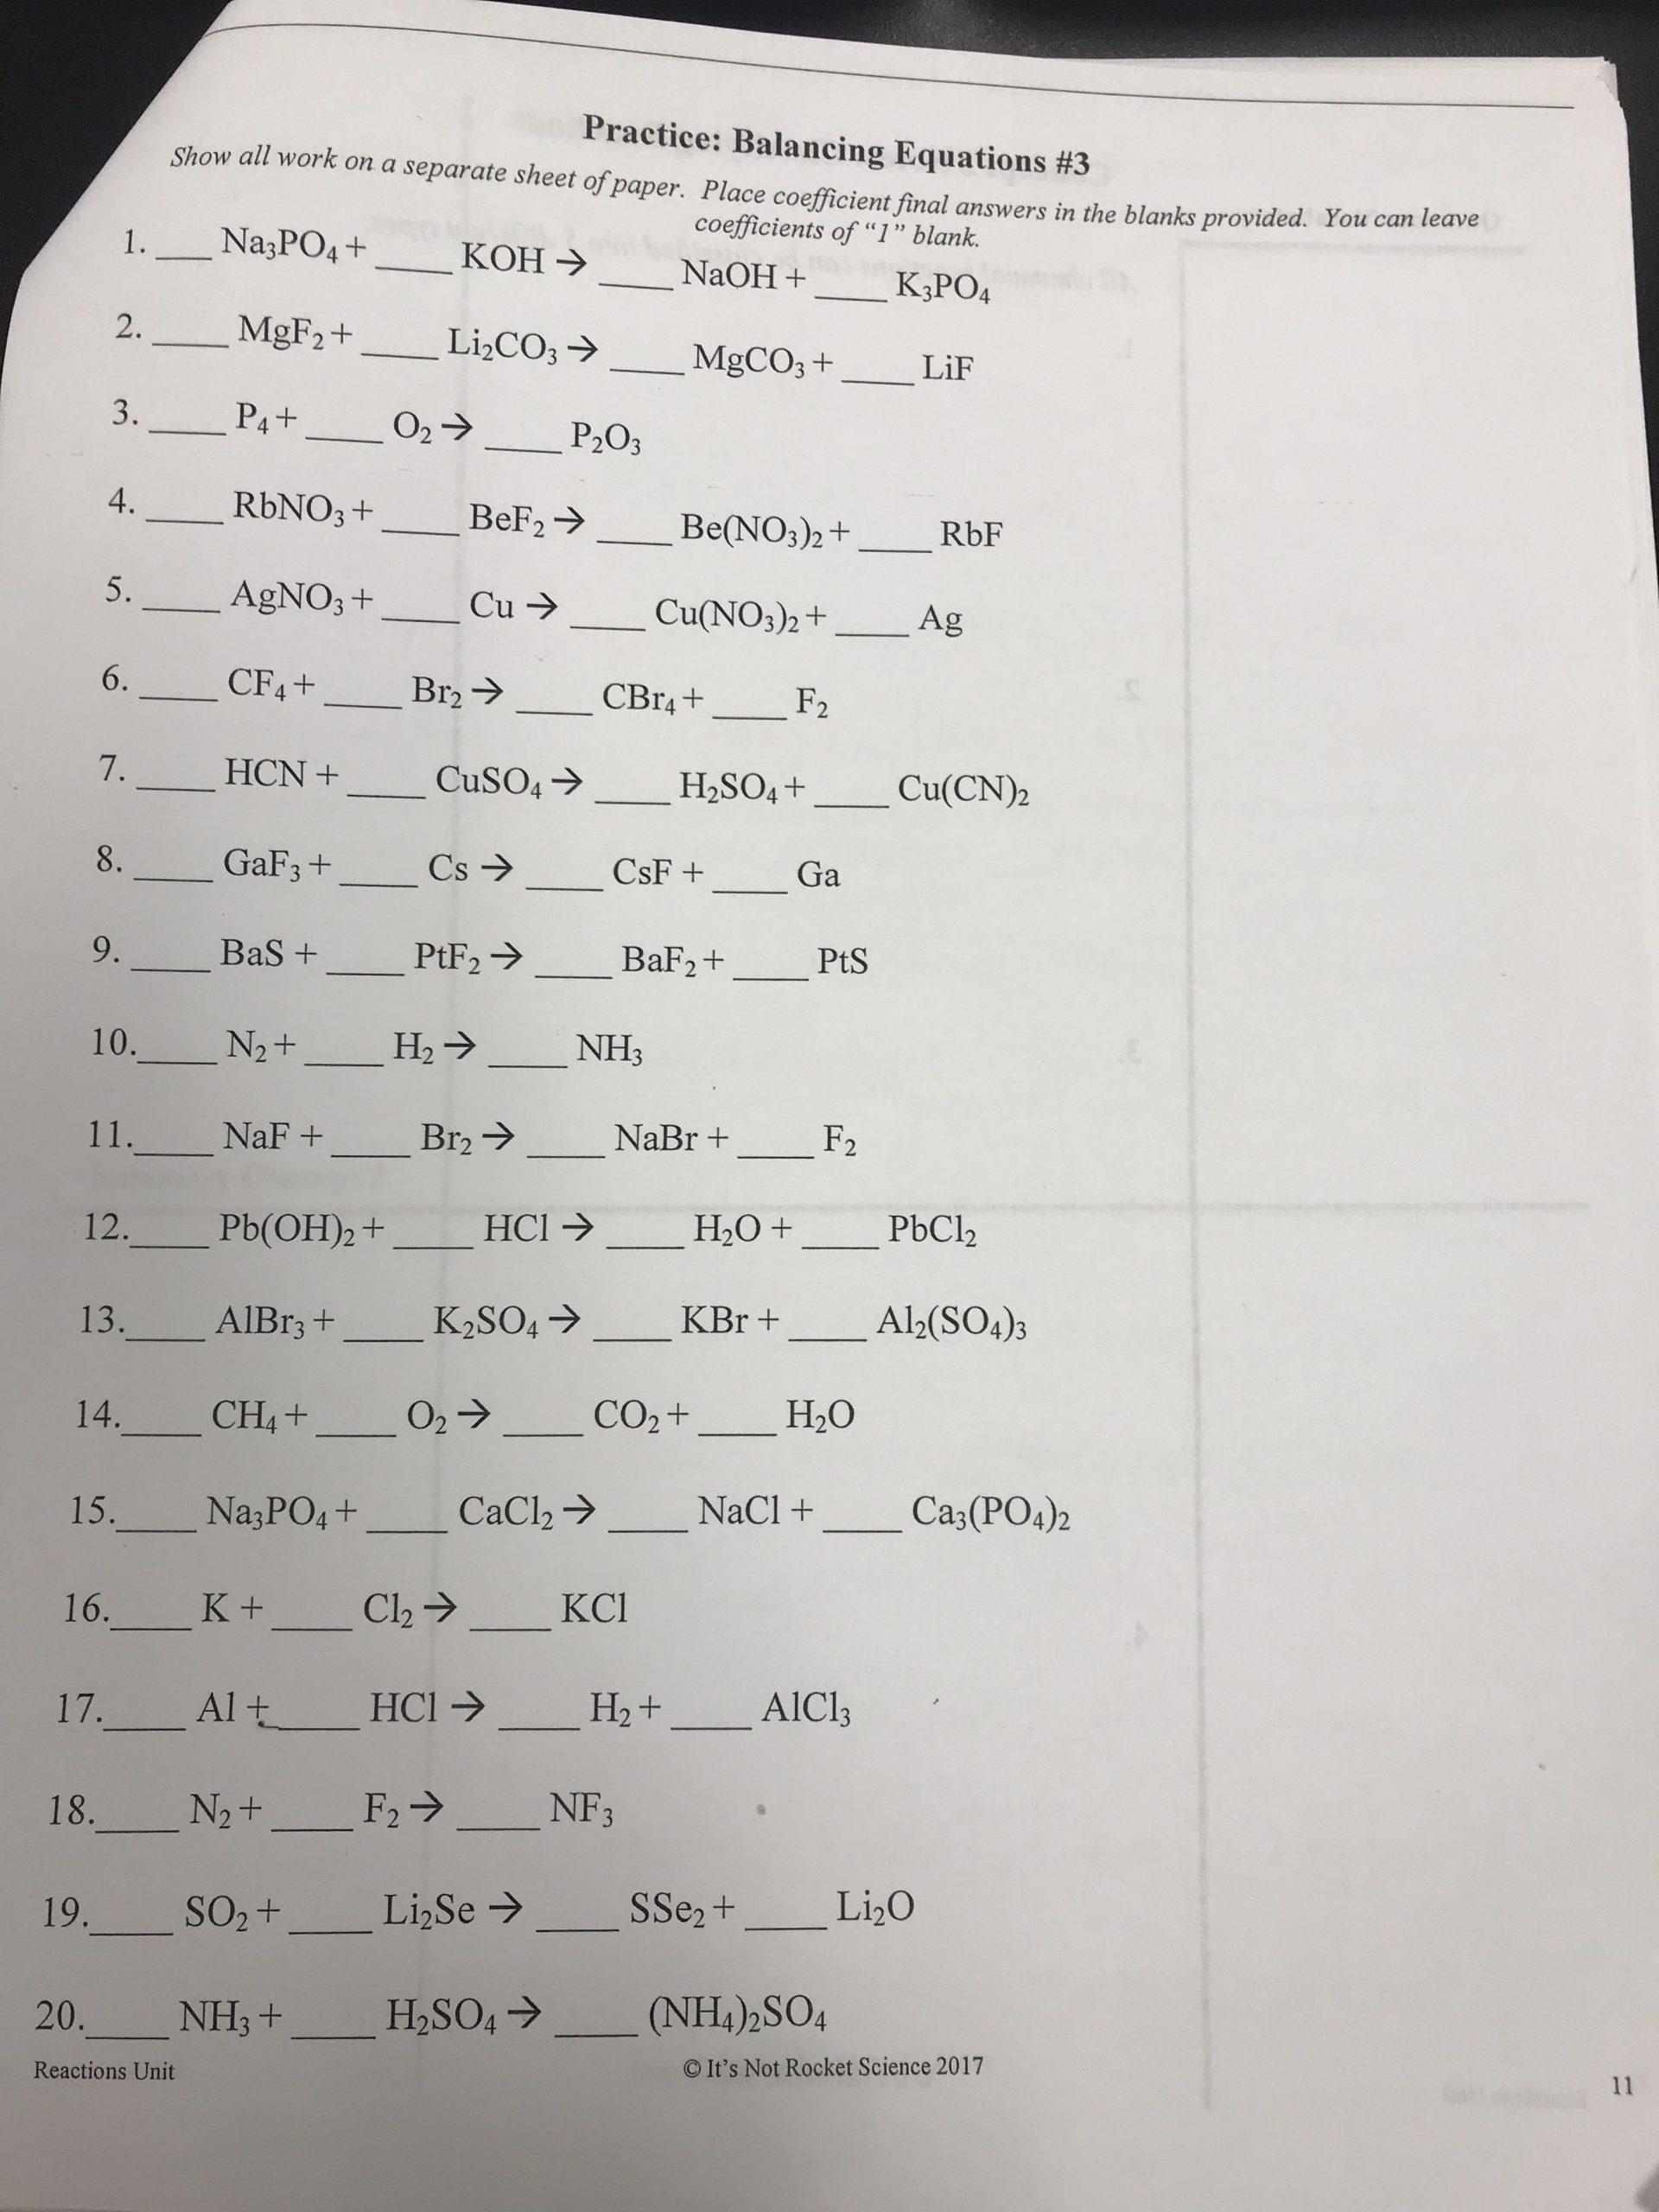 30 Worksheet Balancing Equations Answers